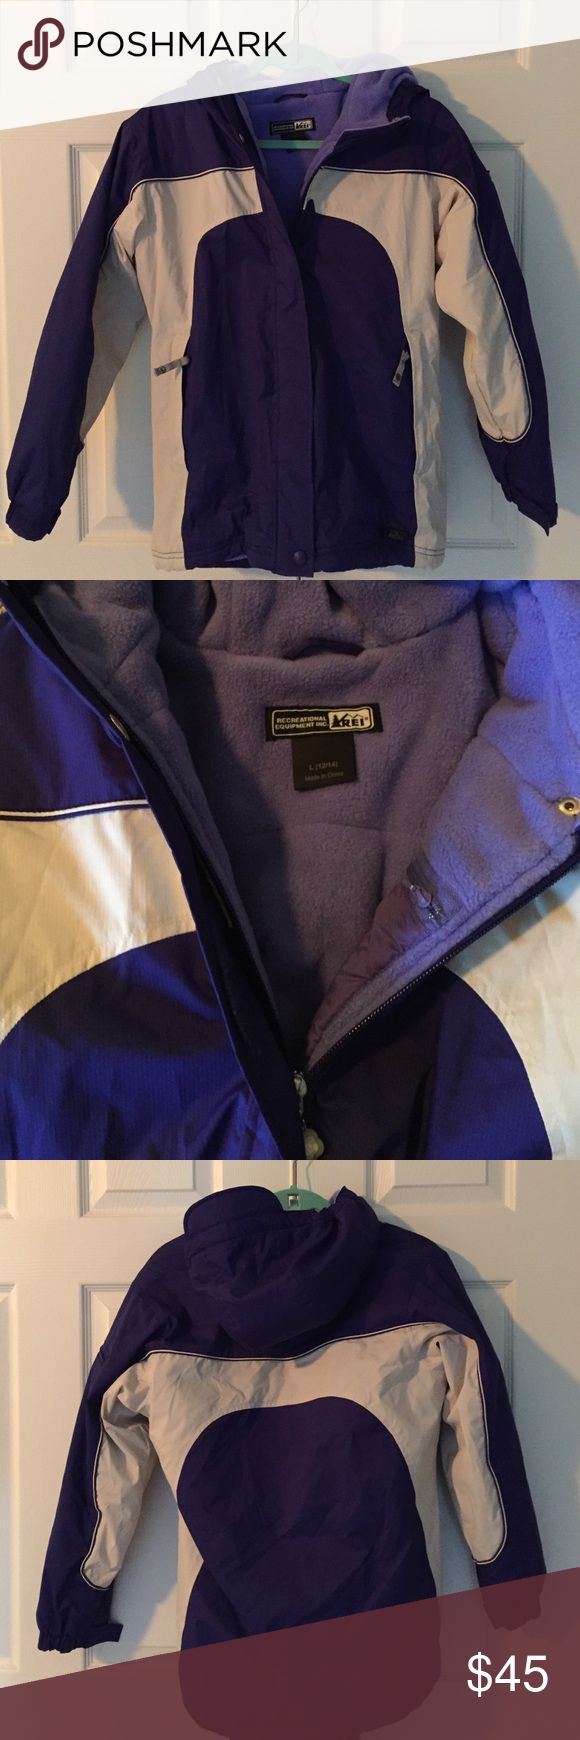 REI Fleece Lined Hooded Ski Coat purple and cream fleece lined hooded ski coat from outdoor adventure store REI. features velcro closure storm flap, oversized zipper pulls, elasticized fleece lined hood and interior zip electronics pocket. size large (14-16). excellent condition - worn on just one weekend snow trip. REI Jackets & Coats